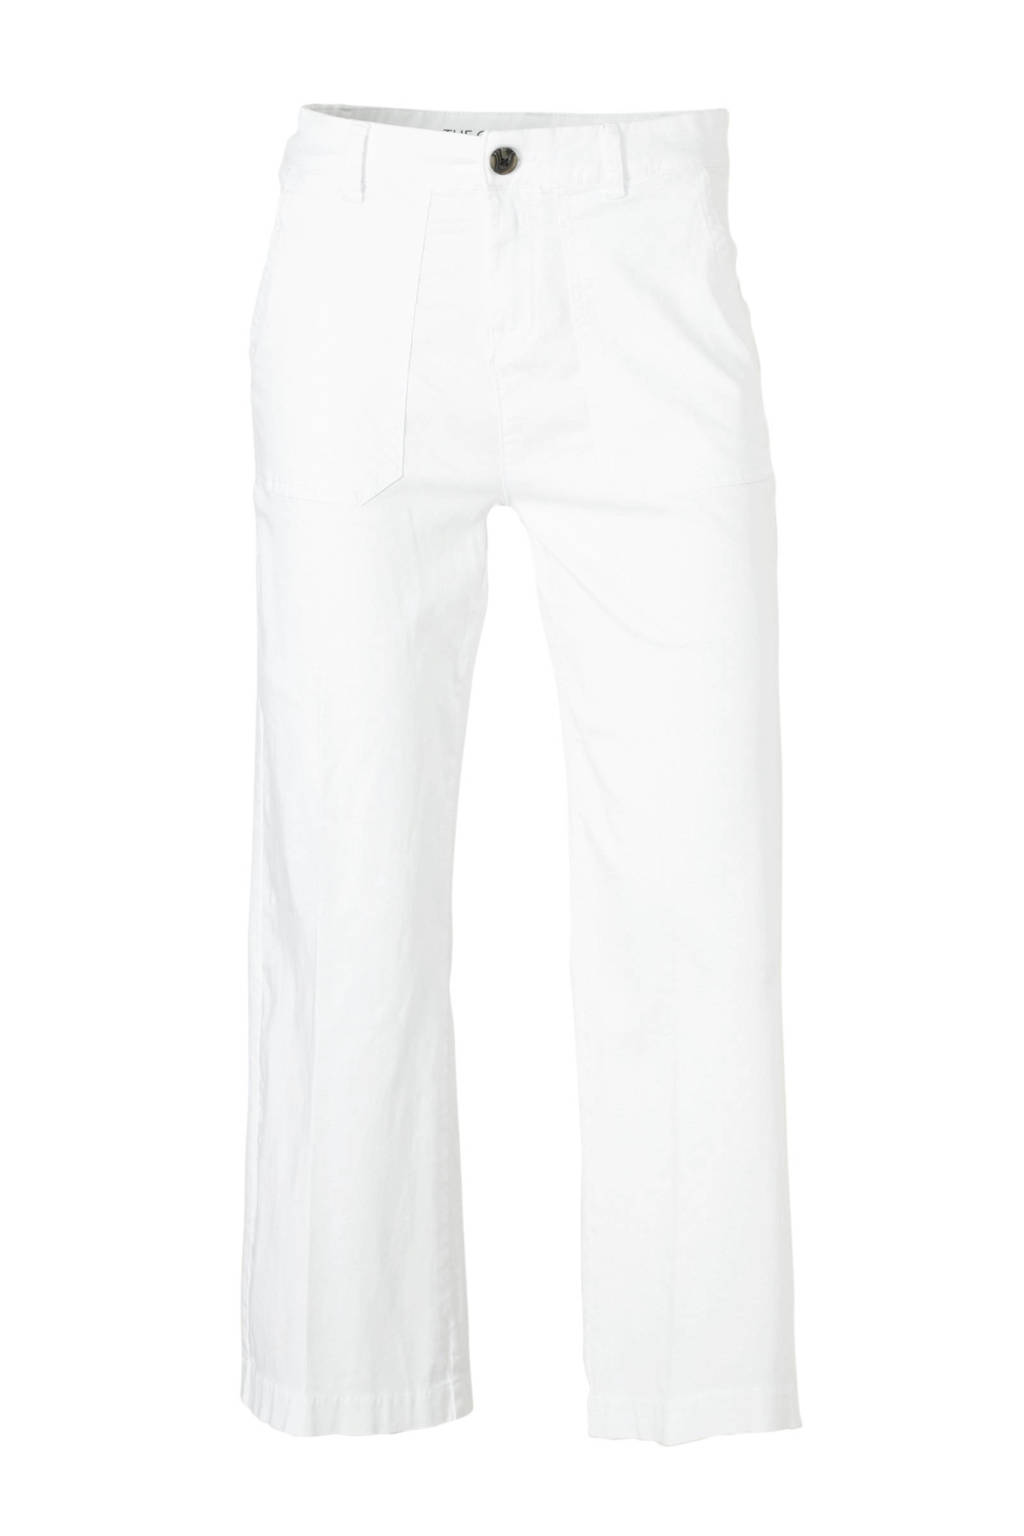 C&A Yessica straight fit capri wit, Wit